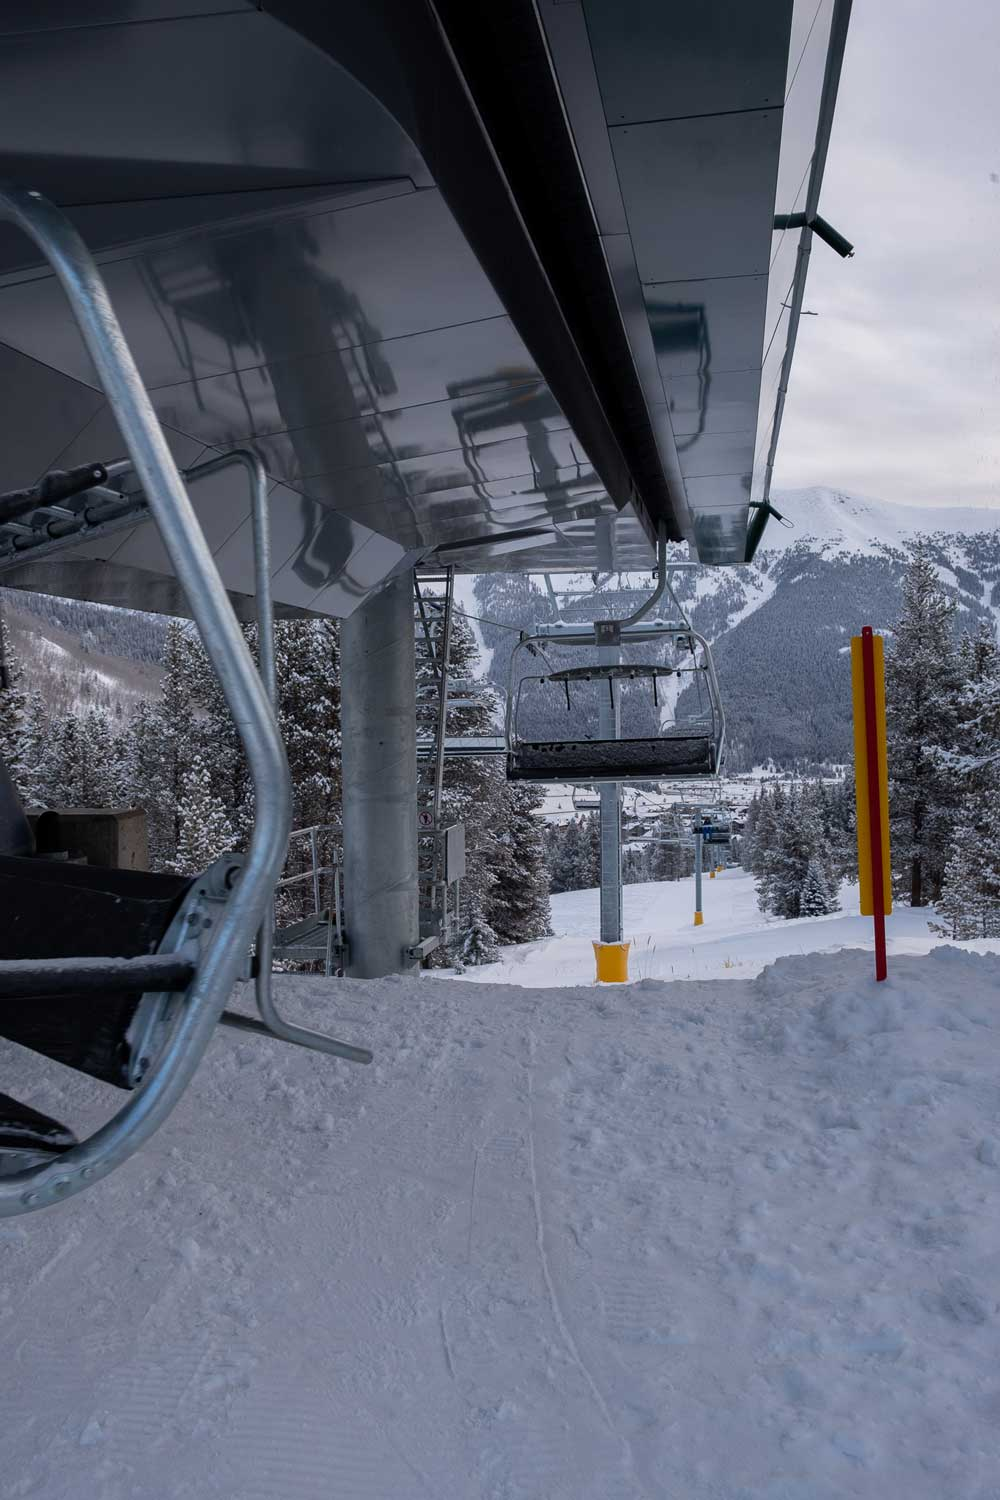 A look at the Kokomo Express lift at Copper Mountain